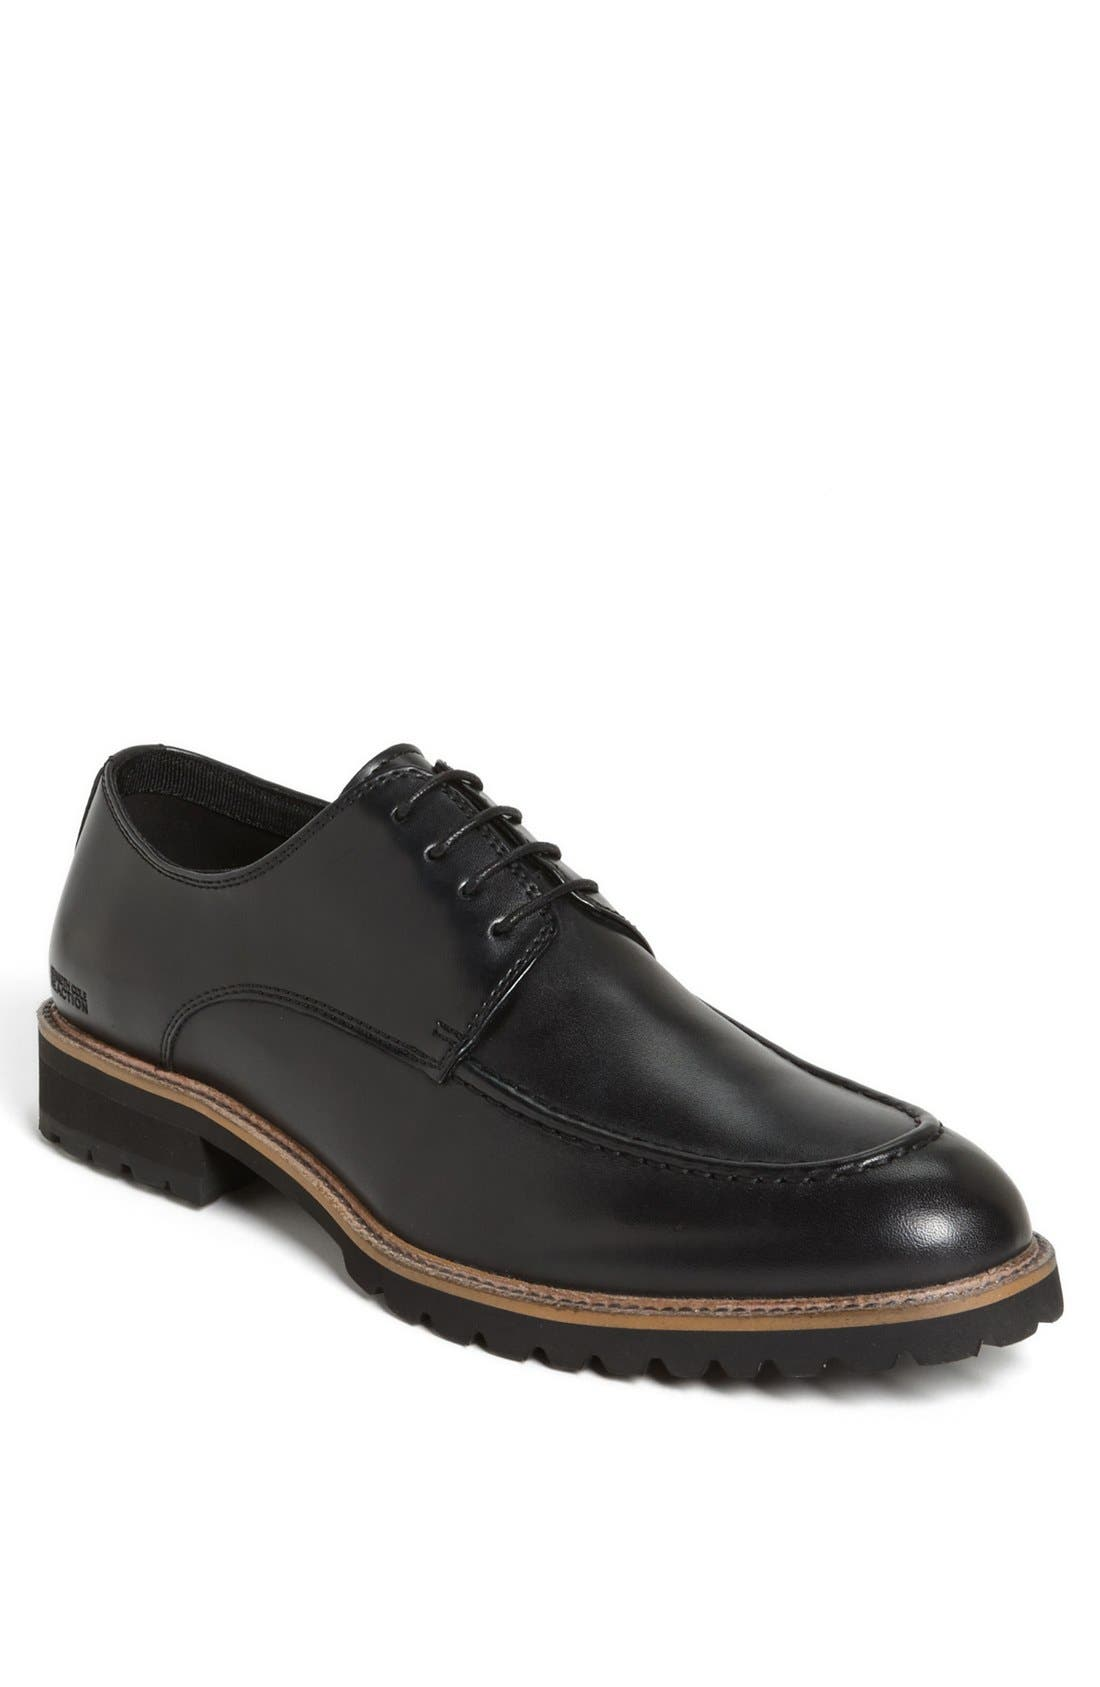 Main Image - Kenneth Cole Reaction 'Act Now' Moc Toe Derby